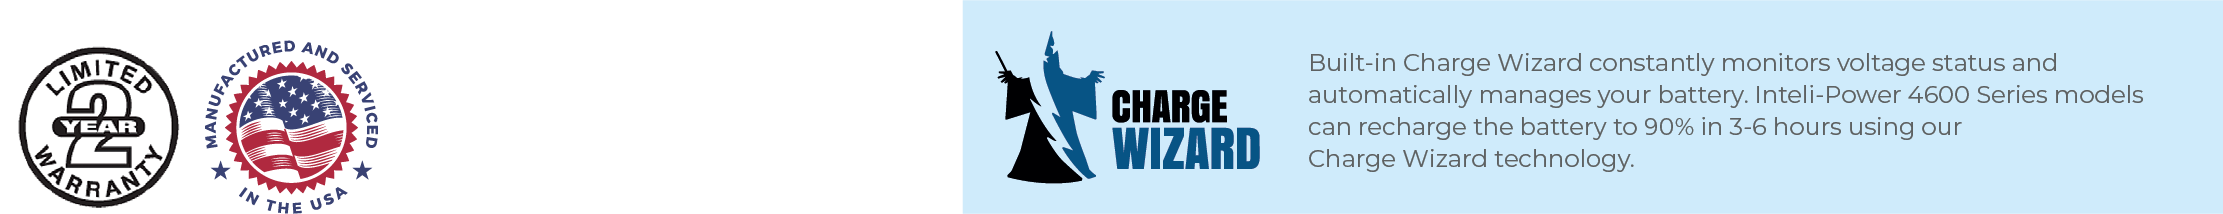 PD4600-Charge-Wizard